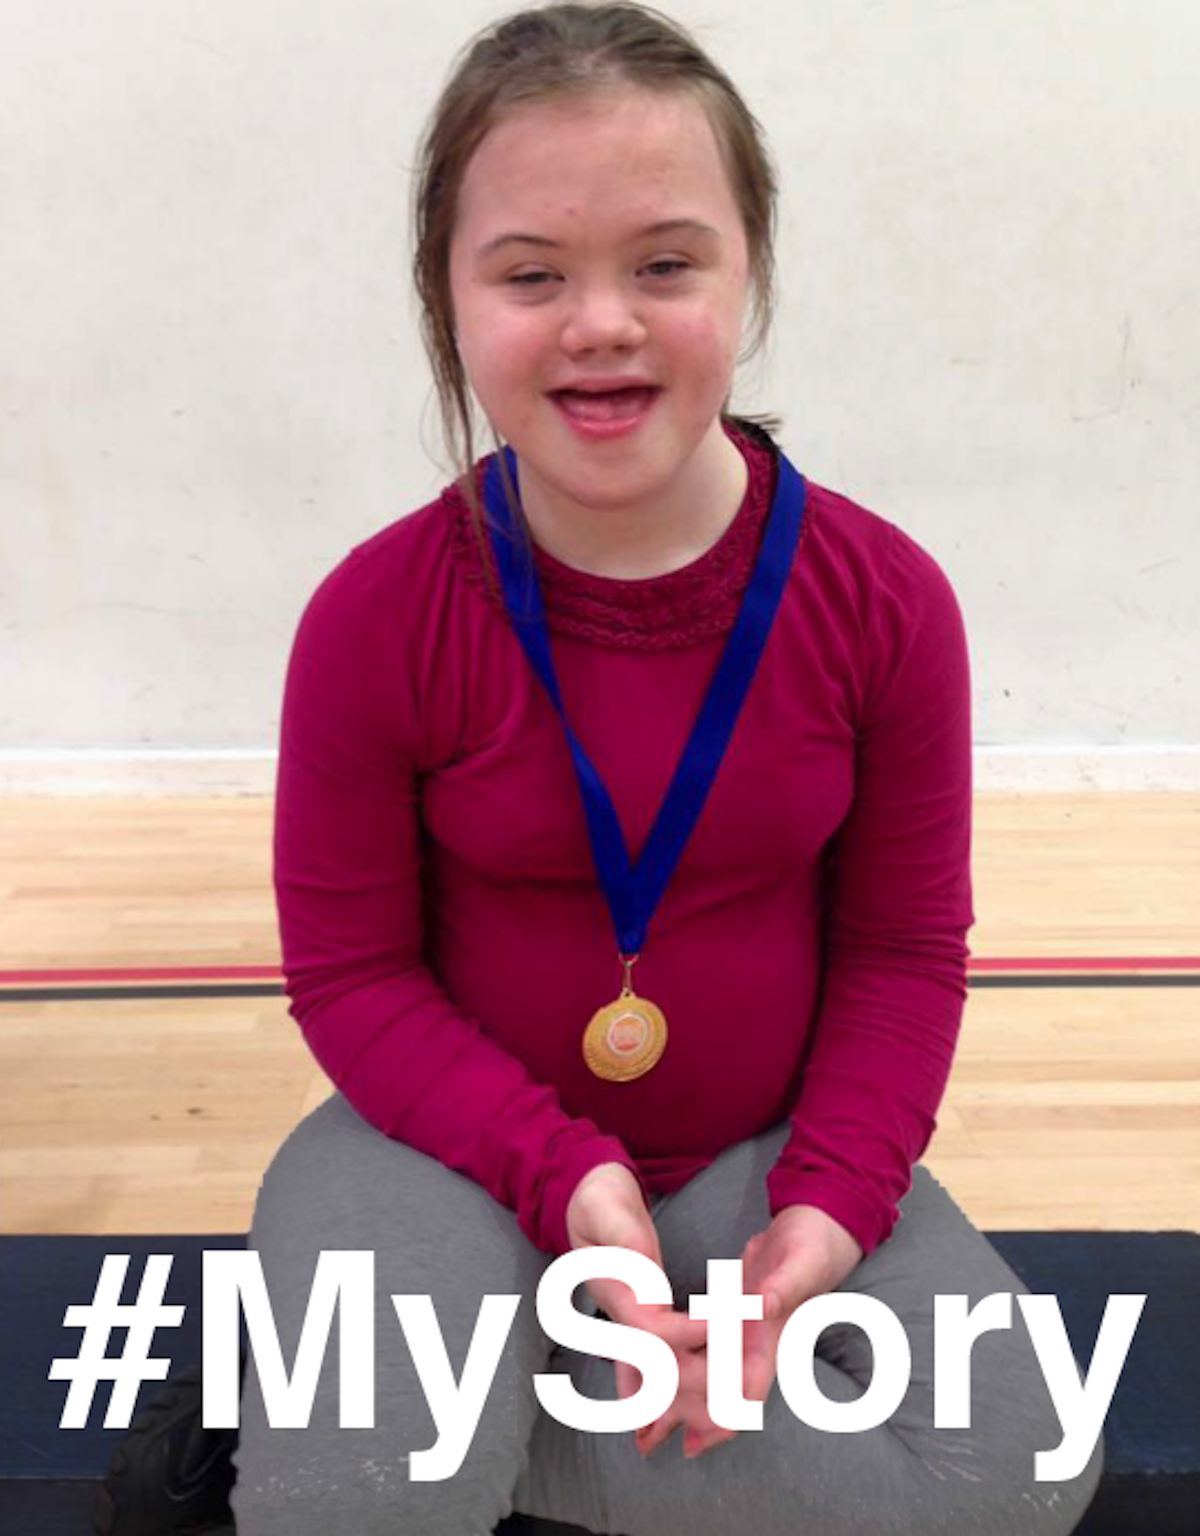 #MyStory - Grace, Club Wandsworth - Disability Sports Coach